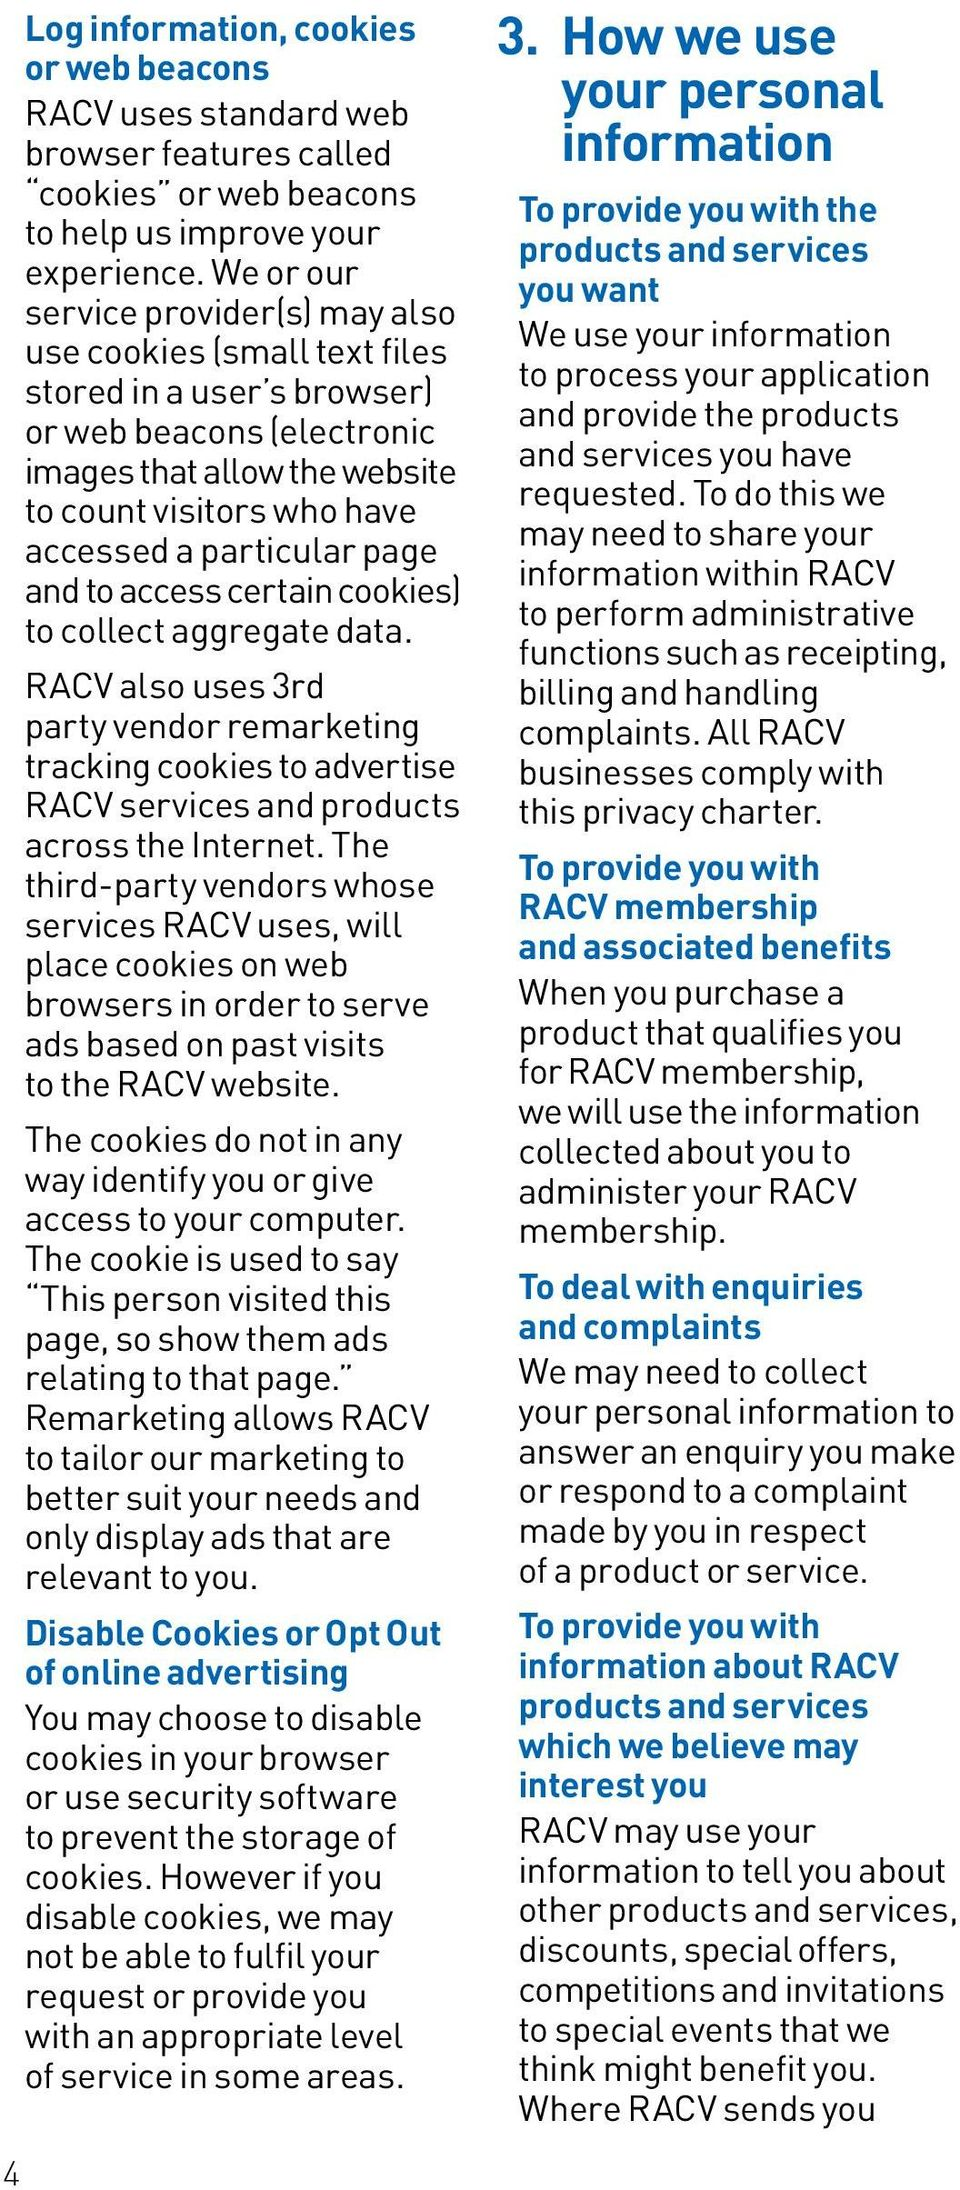 particular page and to access certain cookies) to collect aggregate data. RACV also uses 3rd party vendor remarketing tracking cookies to advertise RACV services and products across the Internet.